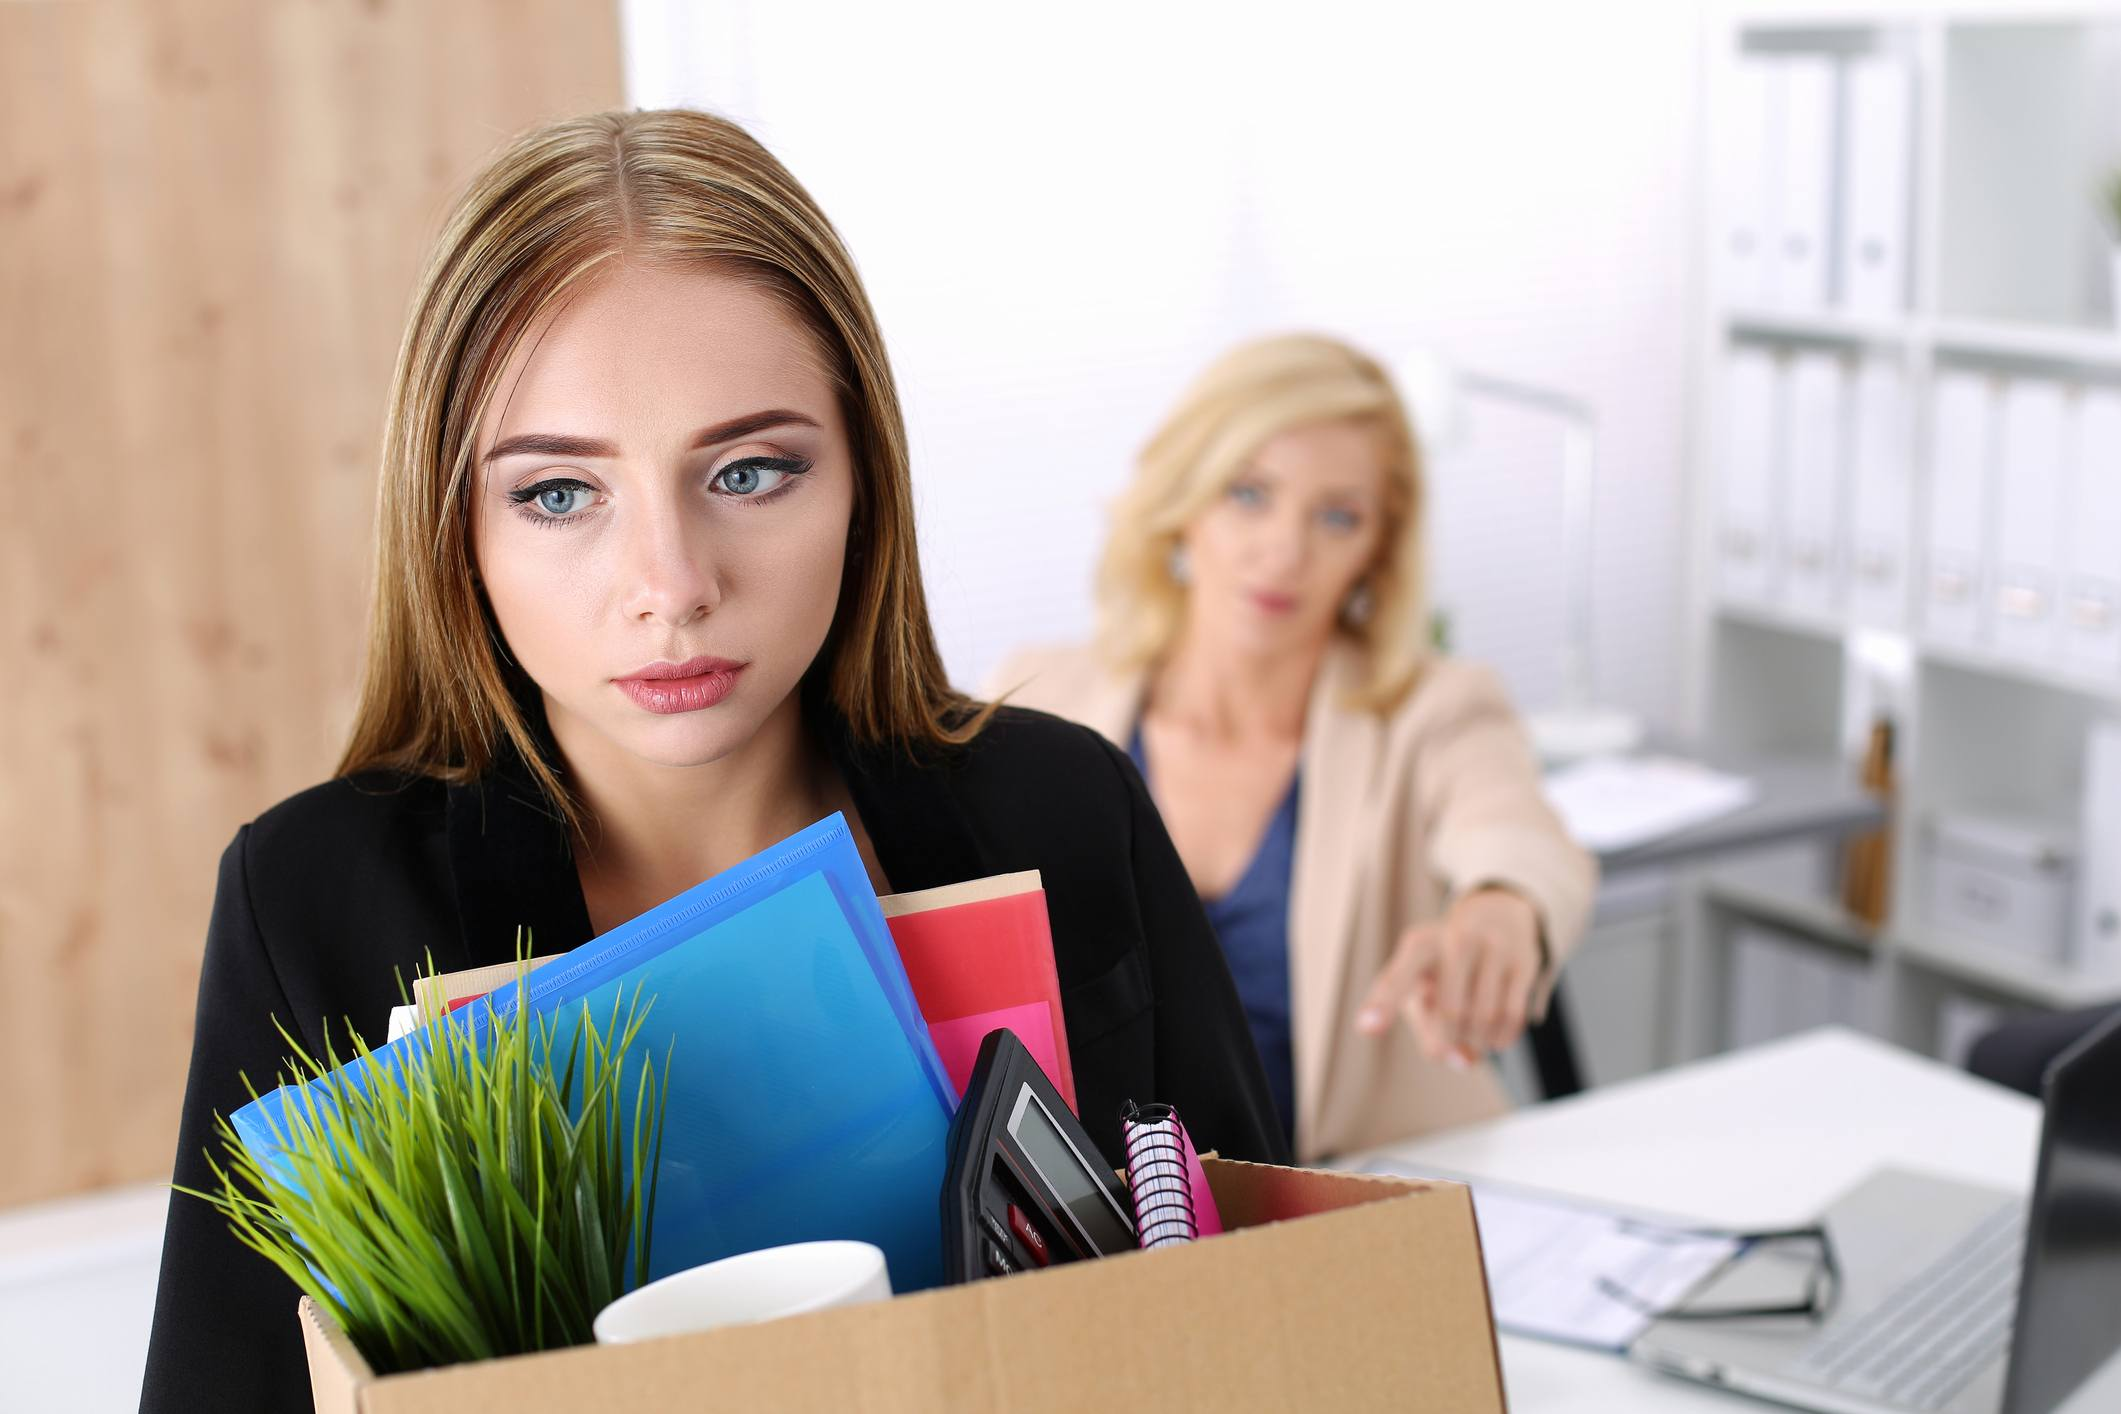 Fired or laid off worker leaving the office with a box of her things